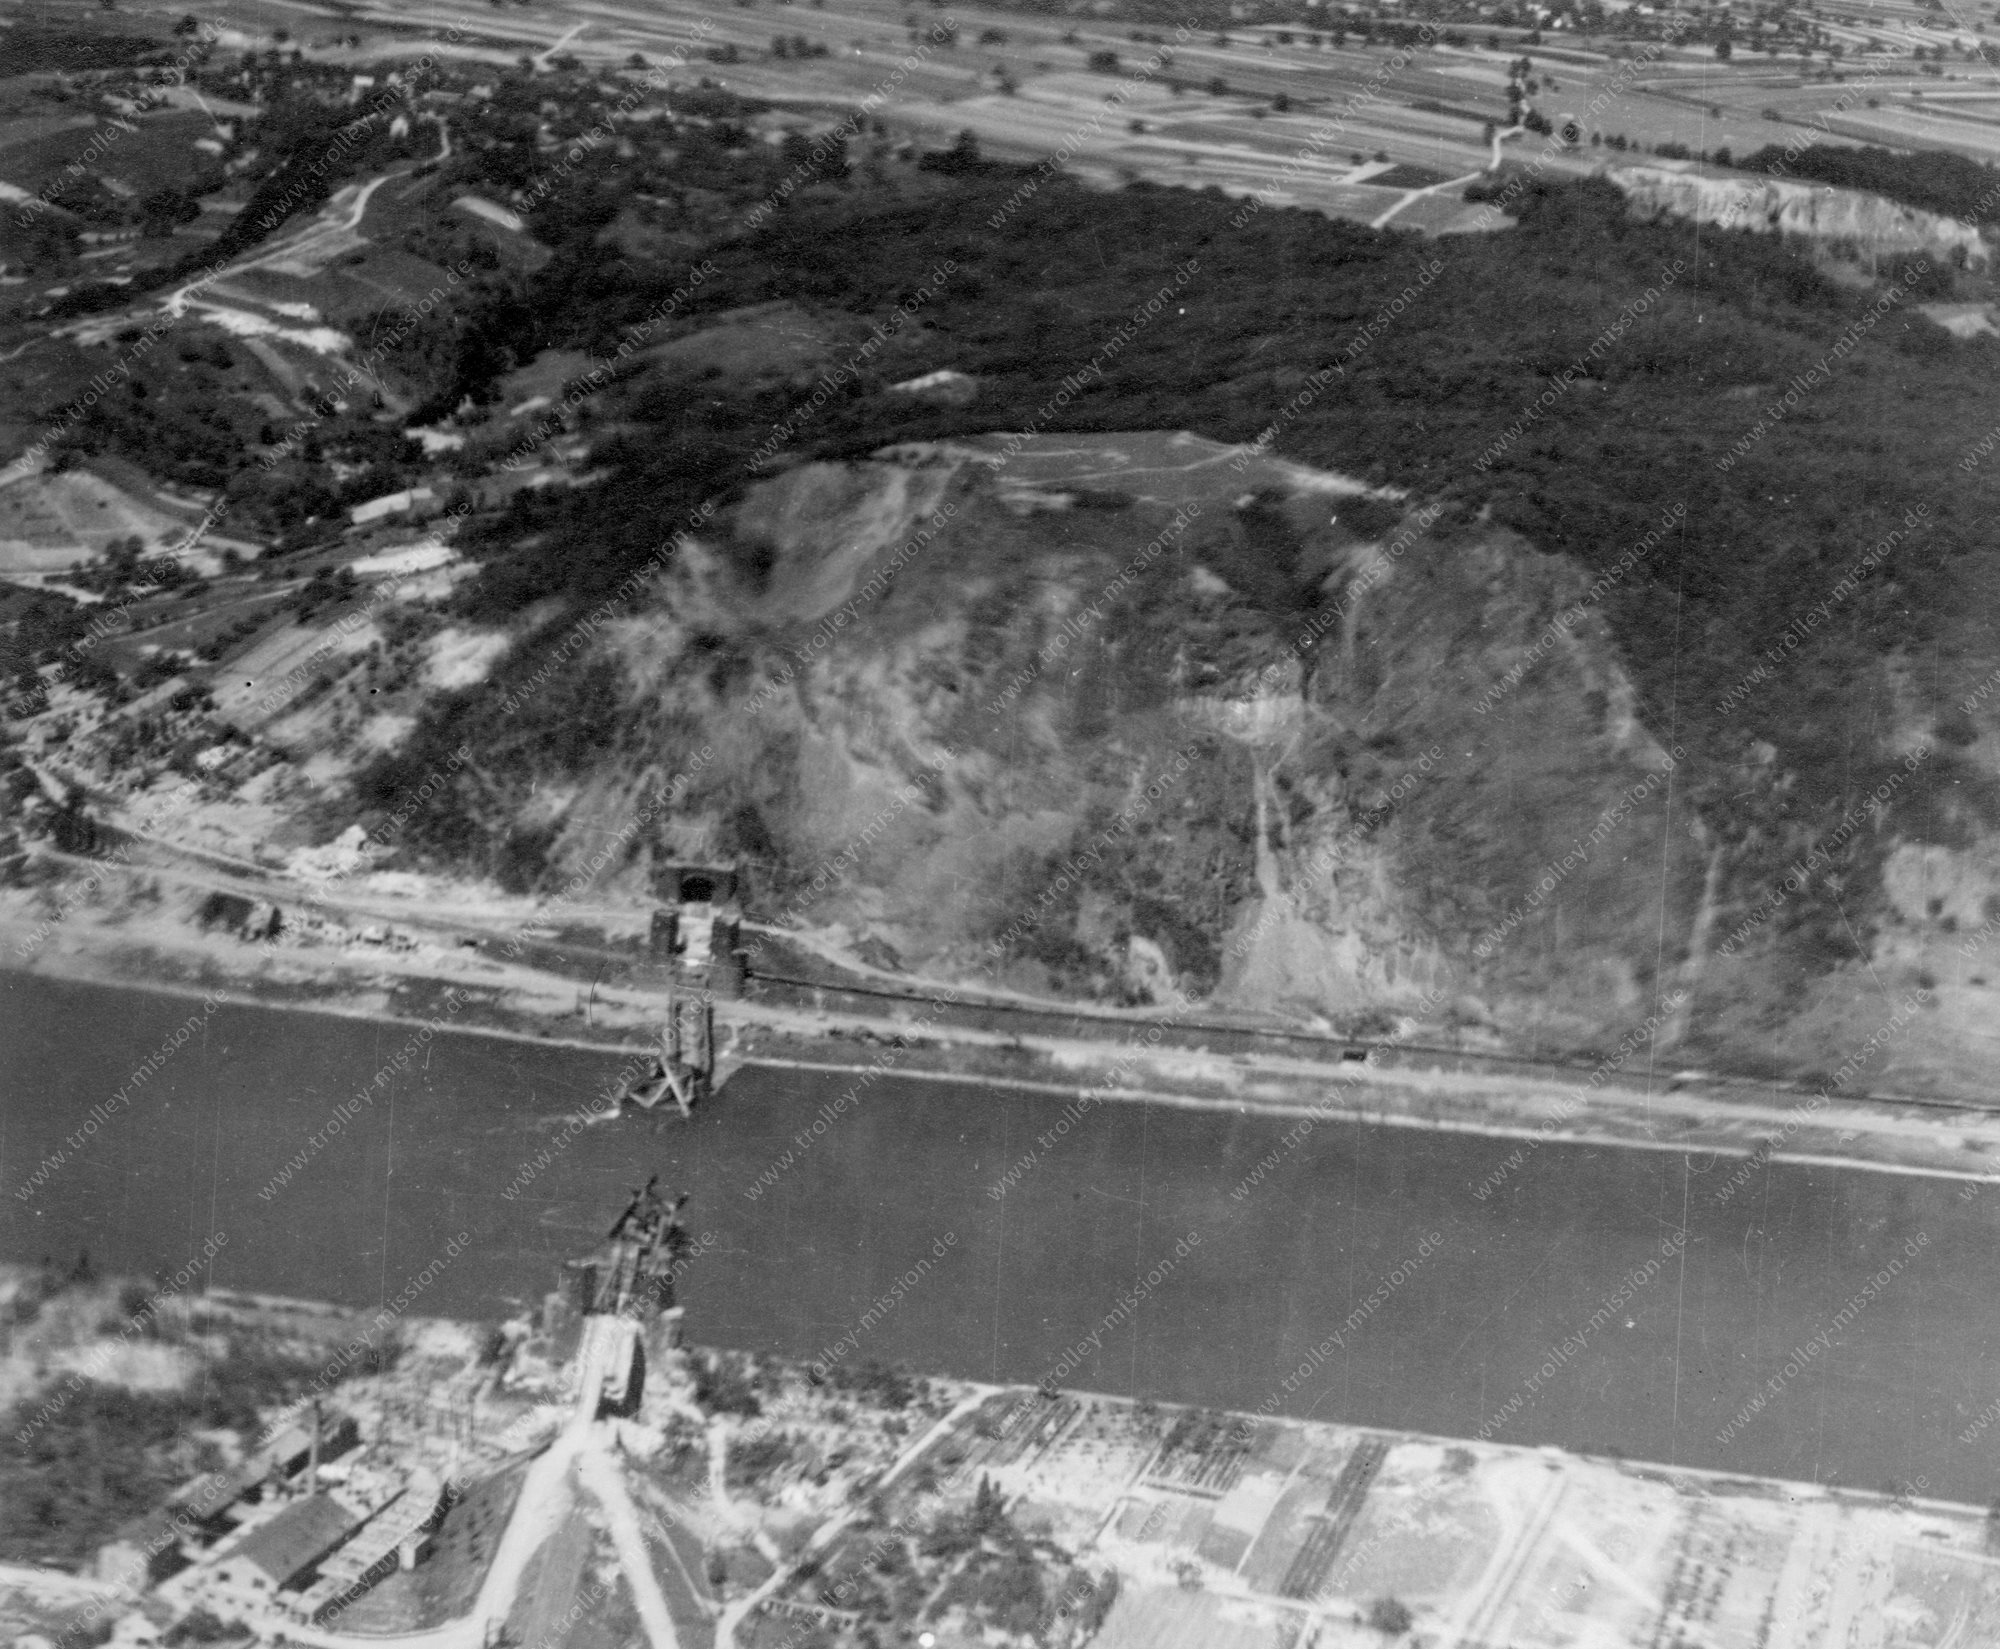 Bridge at Remagen - Aerial Photo of the Ludendorff Bridge over the Rhine (Battle of Remagen)